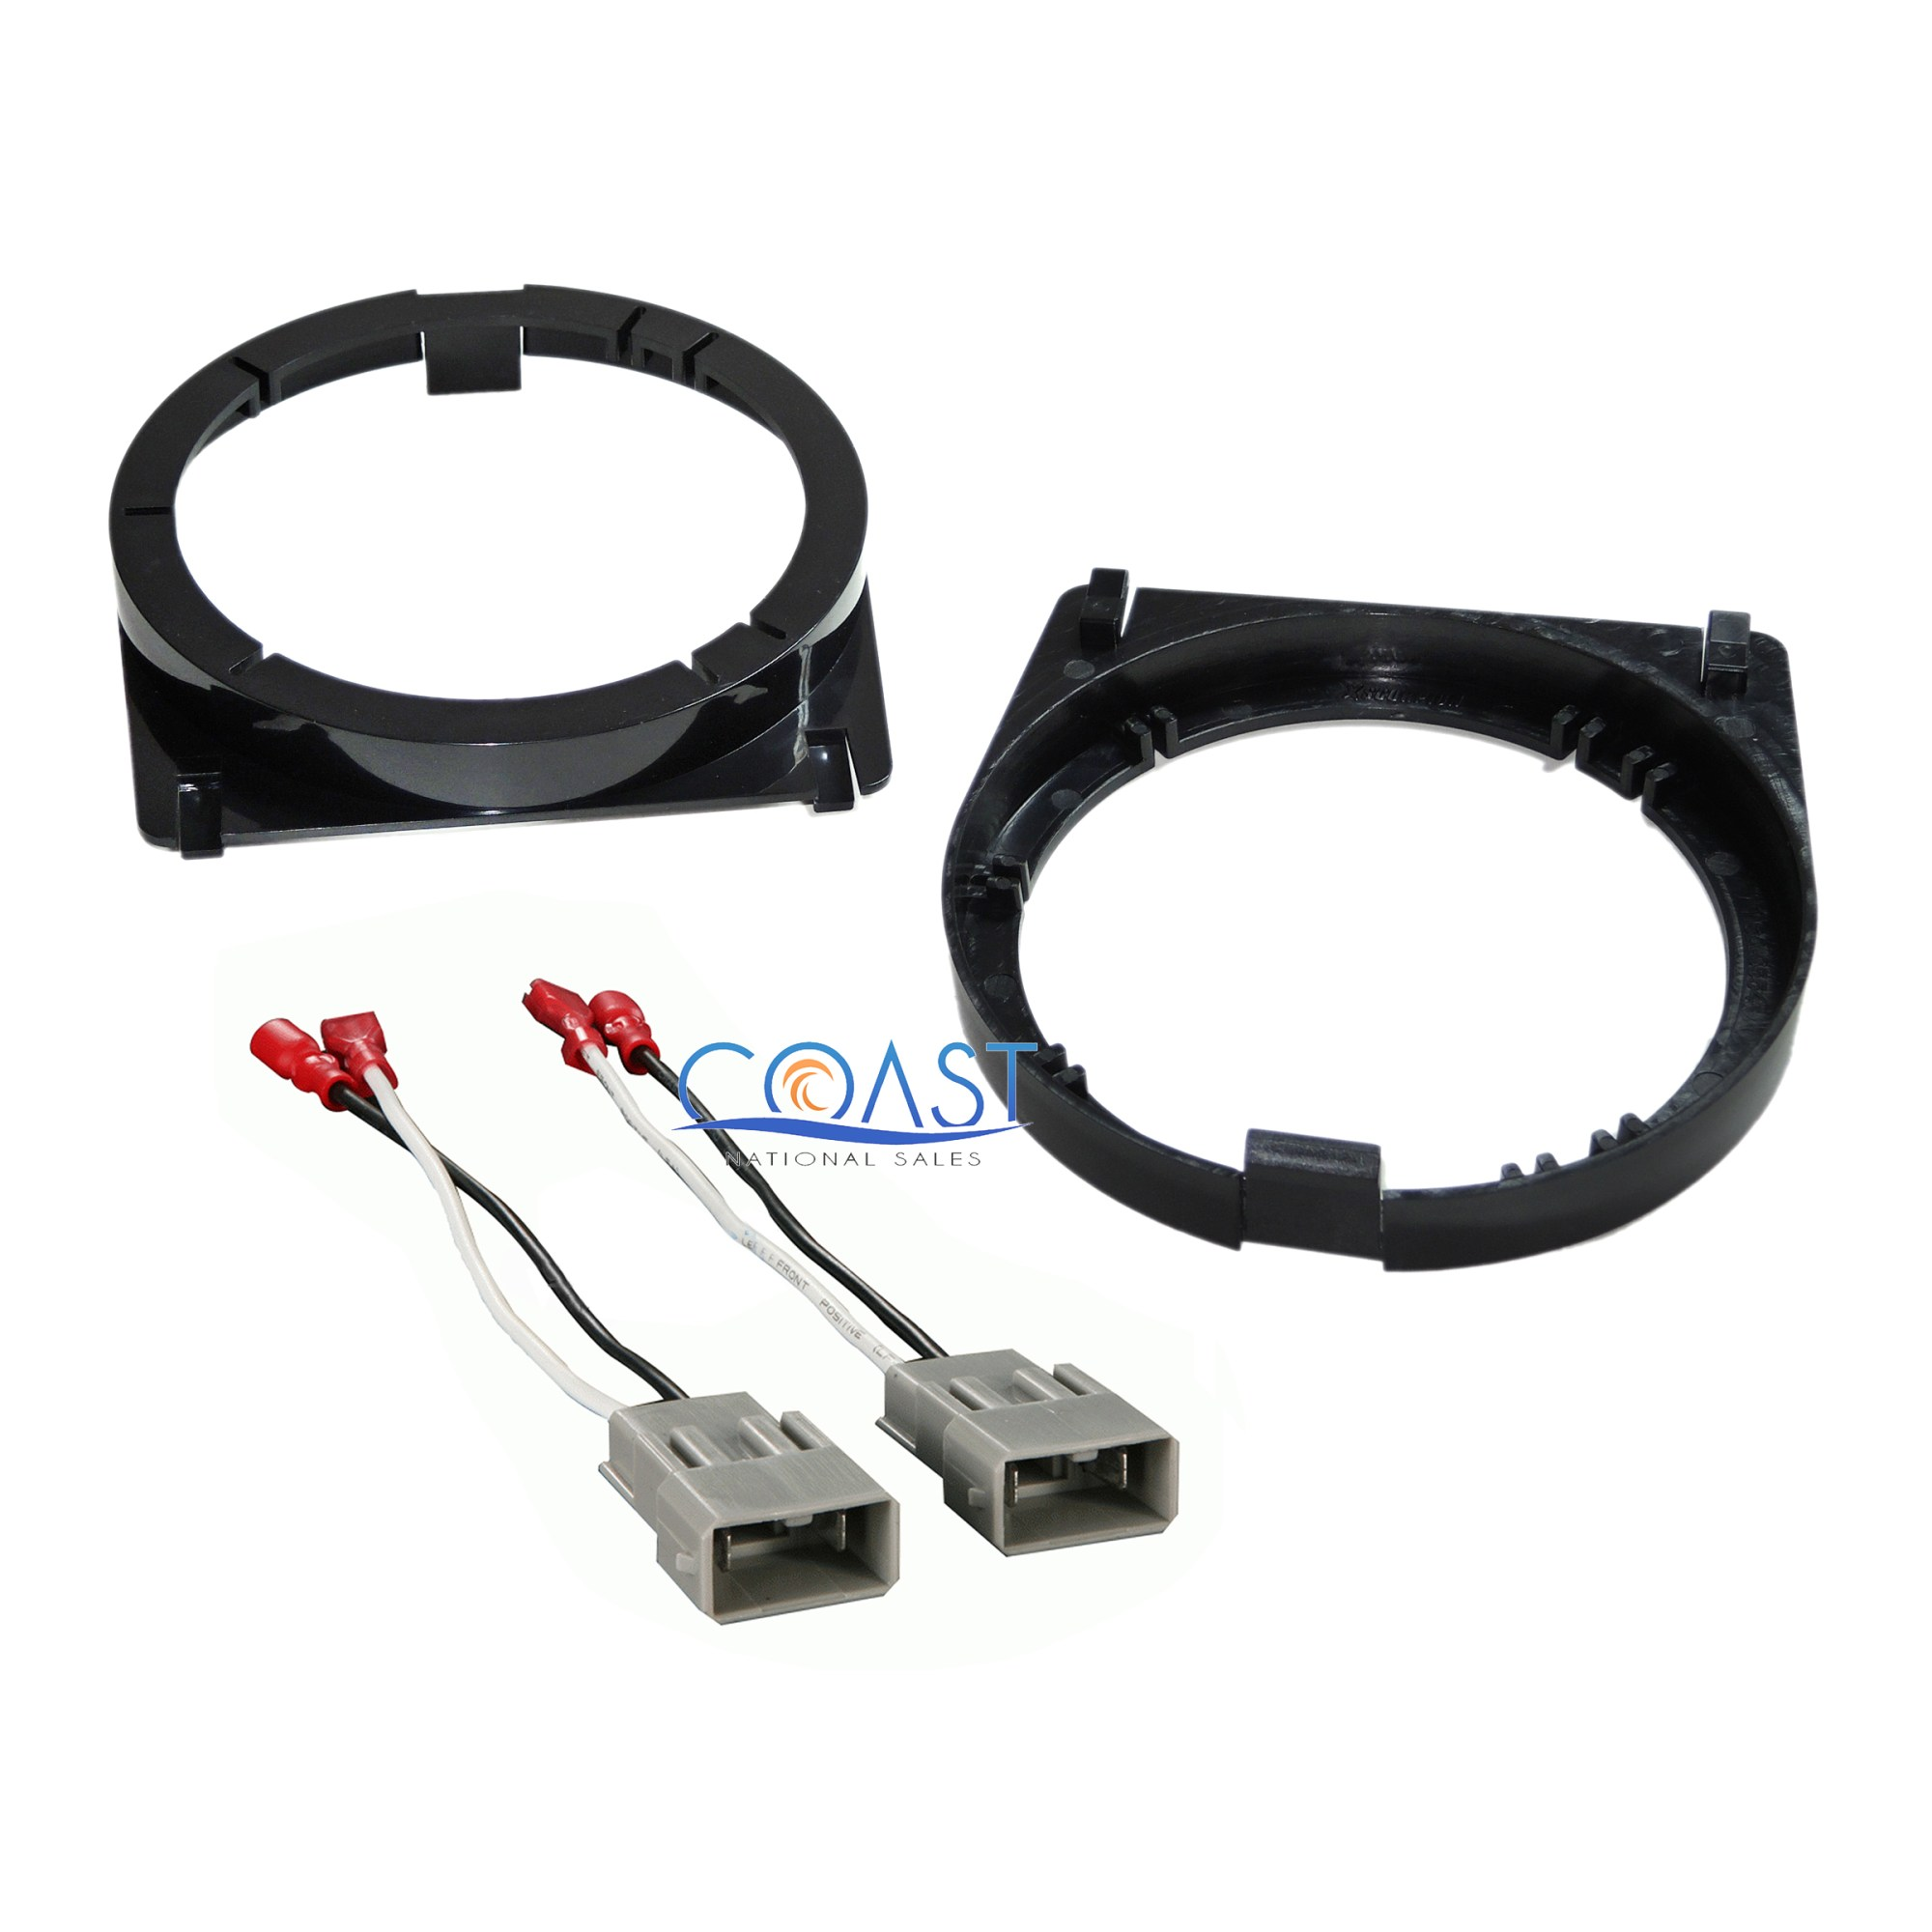 hight resolution of details about front door speaker adapter bracket plate wire harness for honda accord